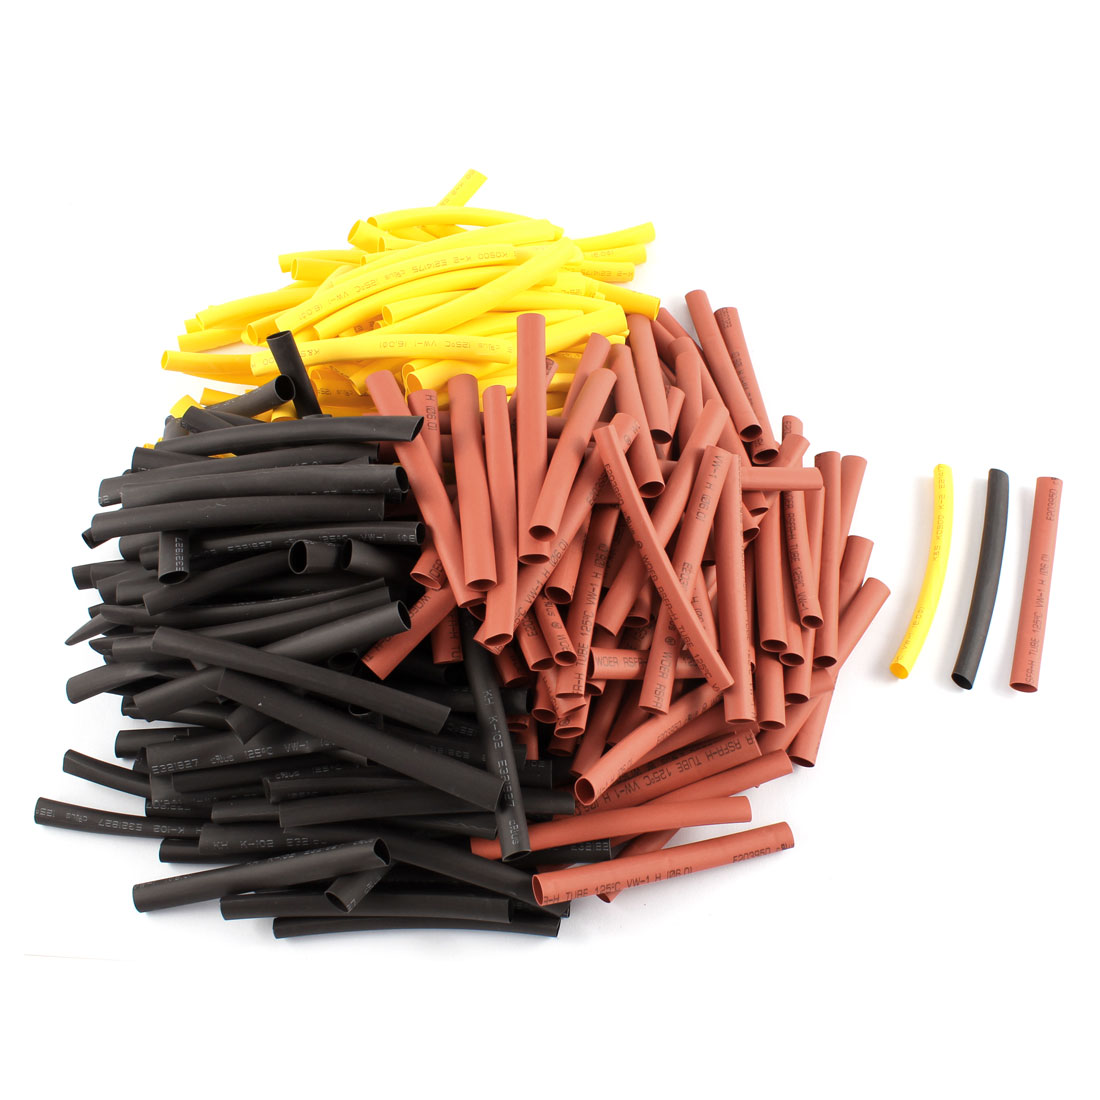 300pcs 6mm Dia 2:1 Ratio Heat Shrink Tubing Tube Insulated Pipe Cable Cover Wire Sleeve